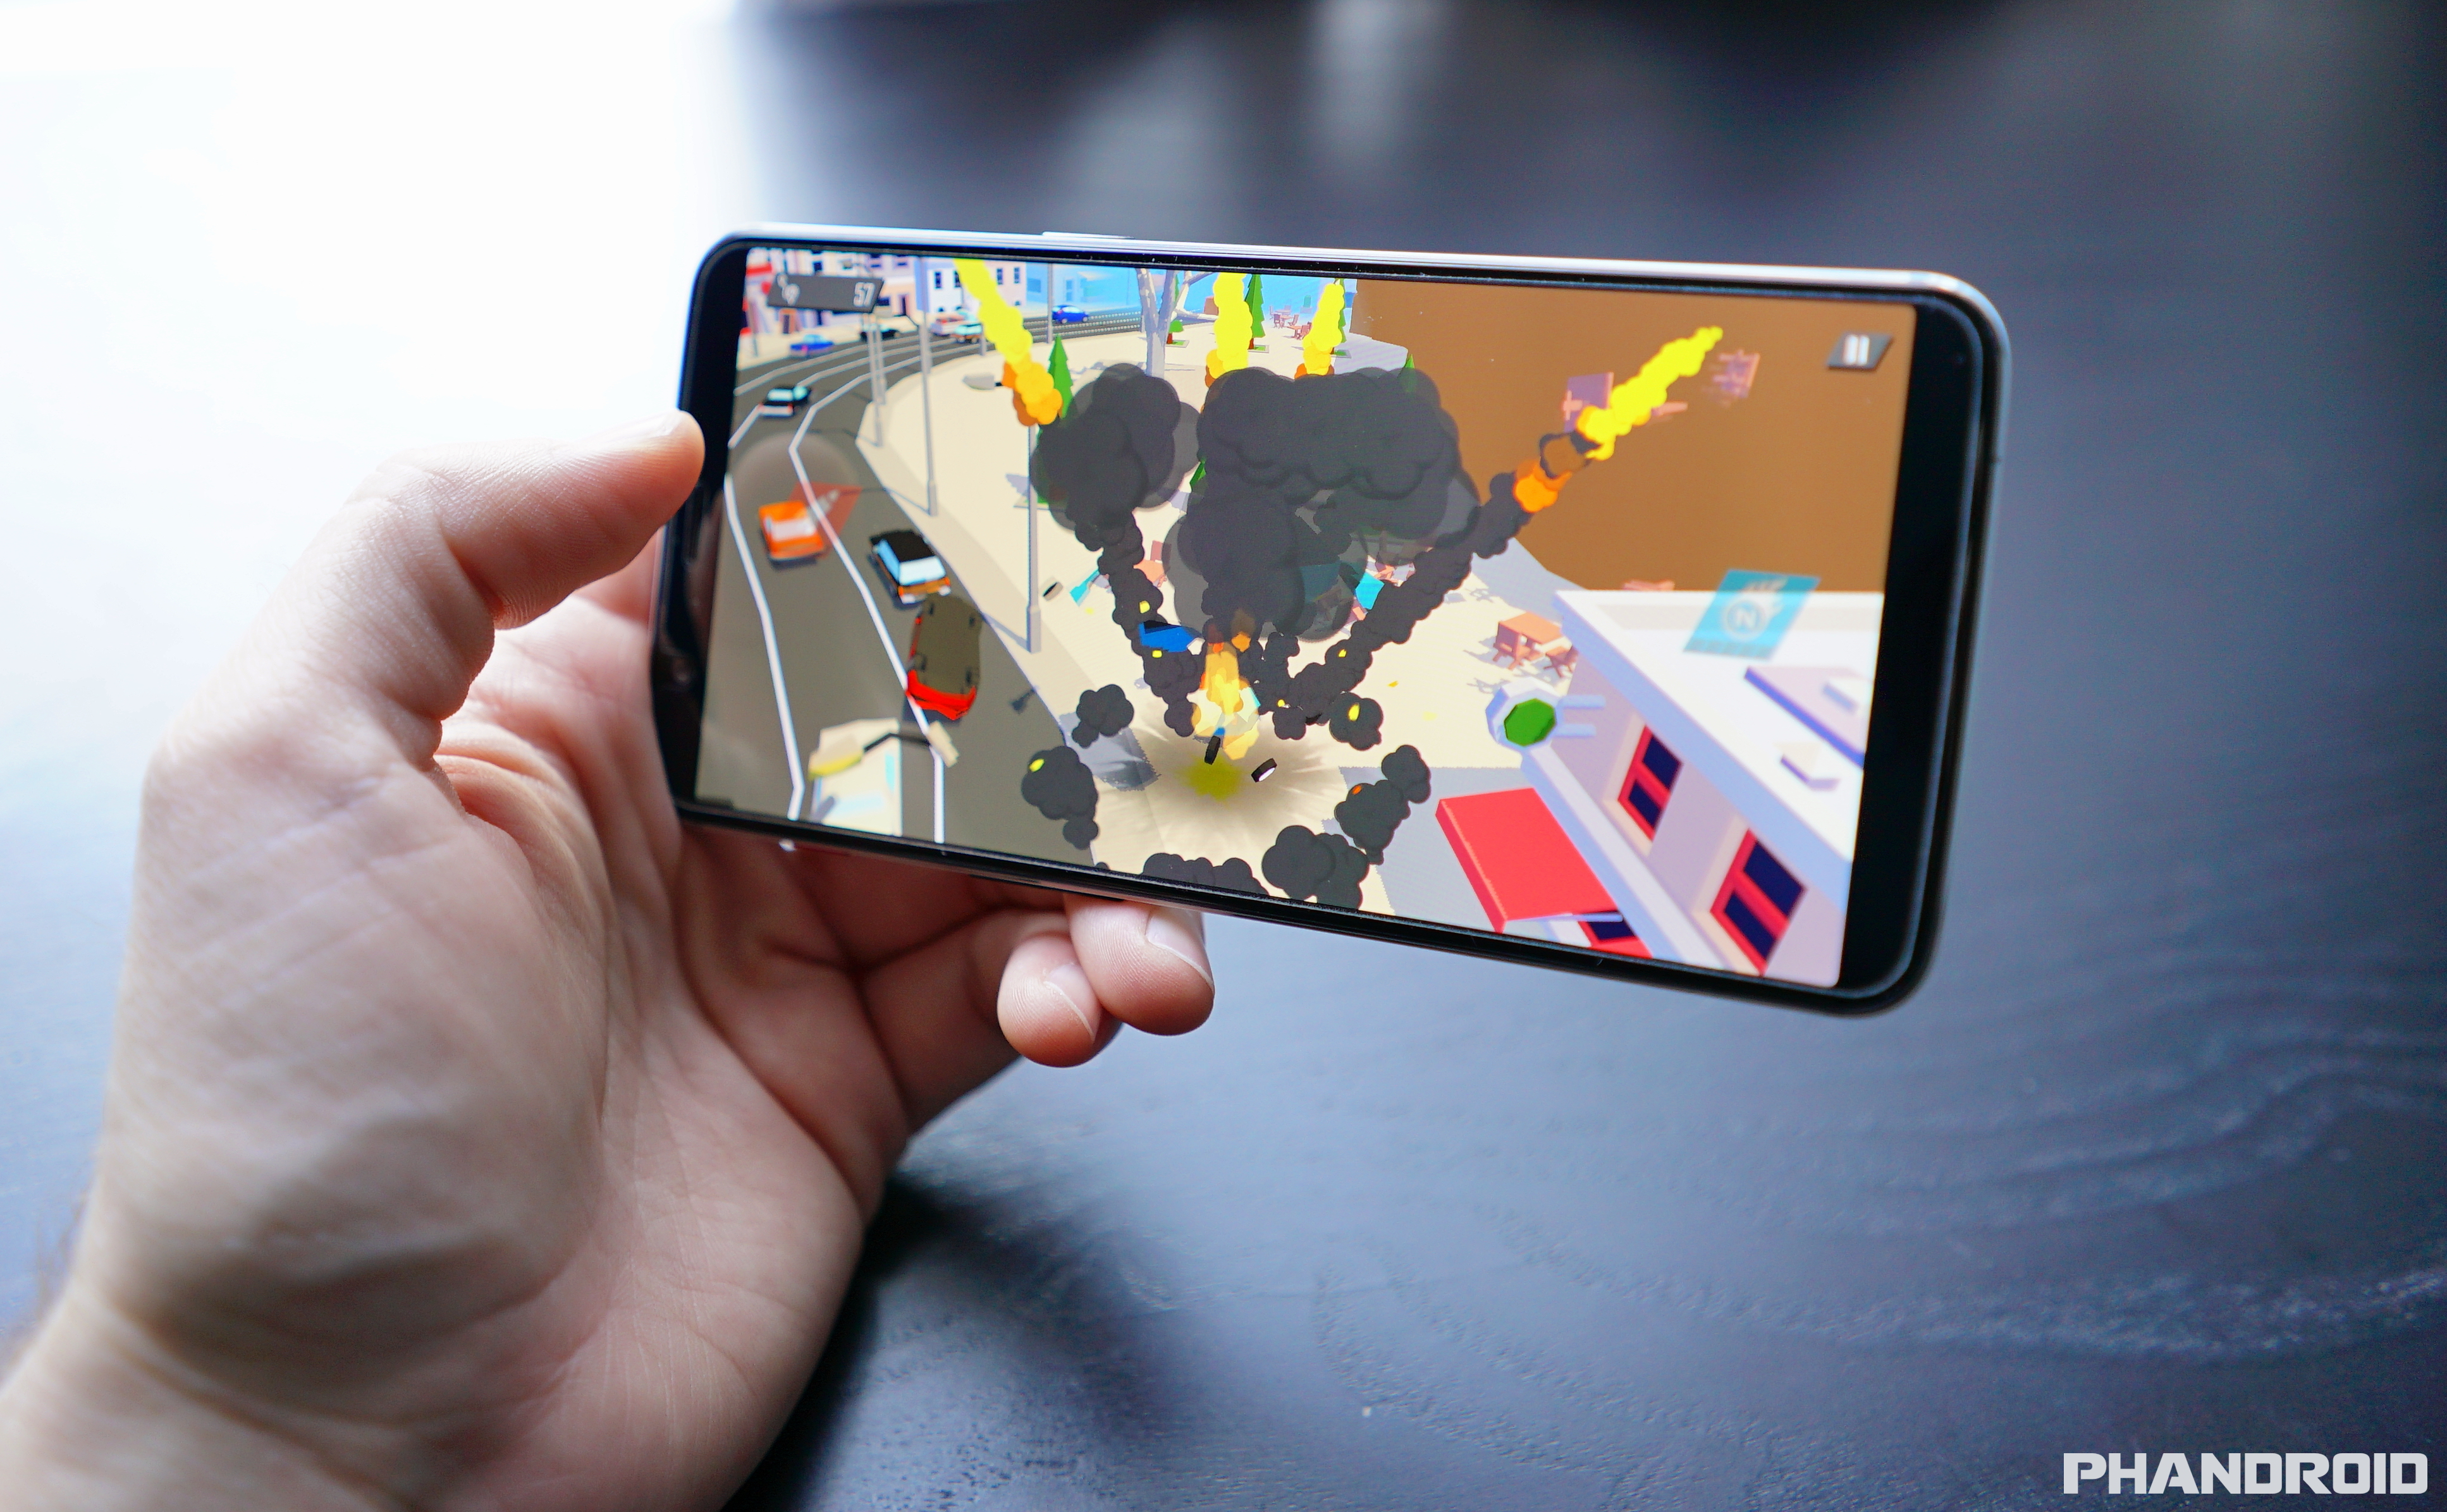 7 reasons to choose the OnePlus 5T over the Pixel 2 XL